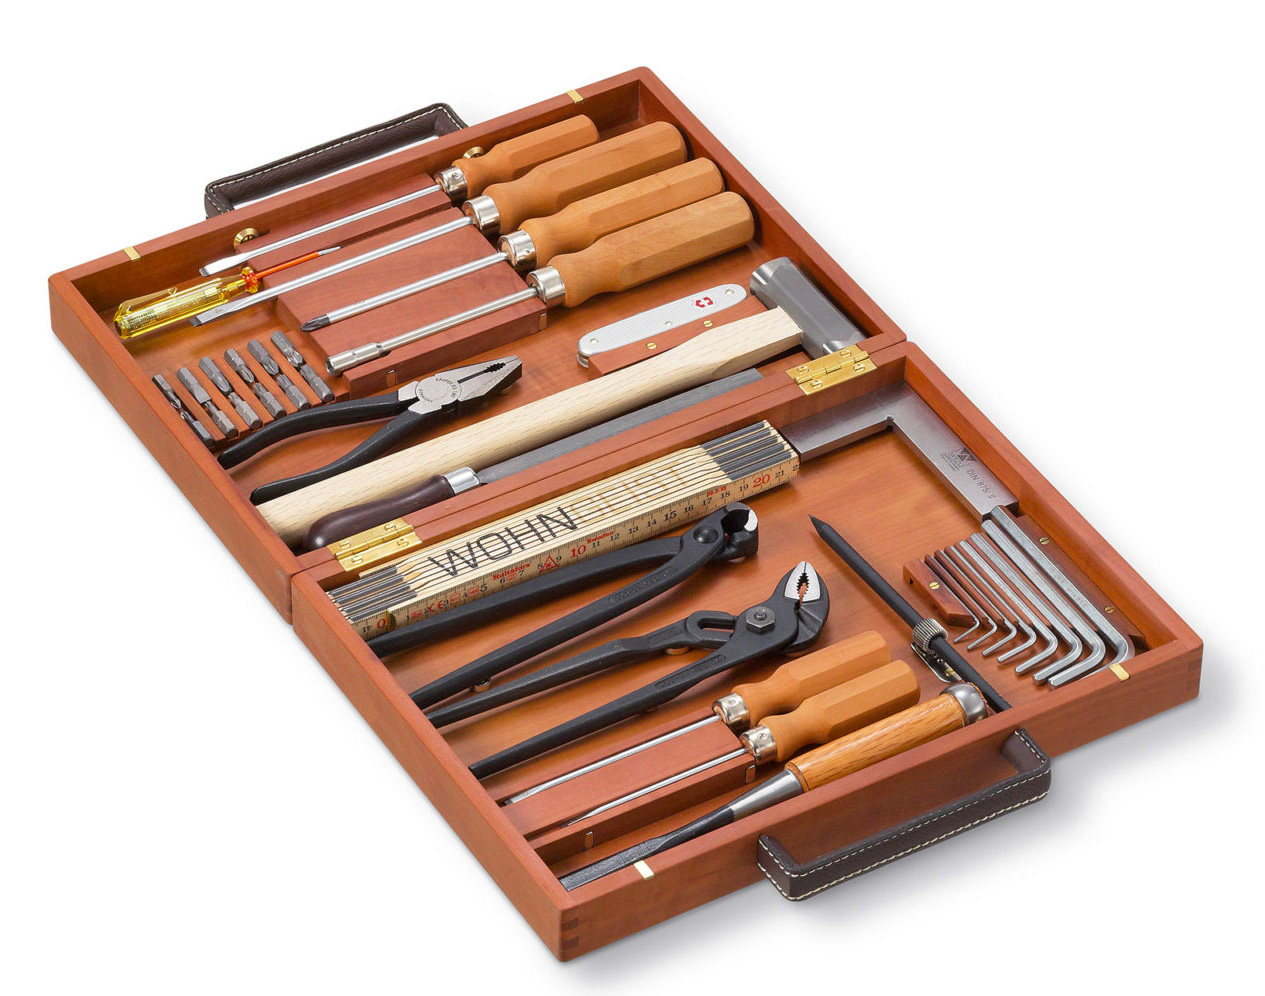 Every Home Handyman Needs a Super Expensive Swiss Tool Box at werd.com